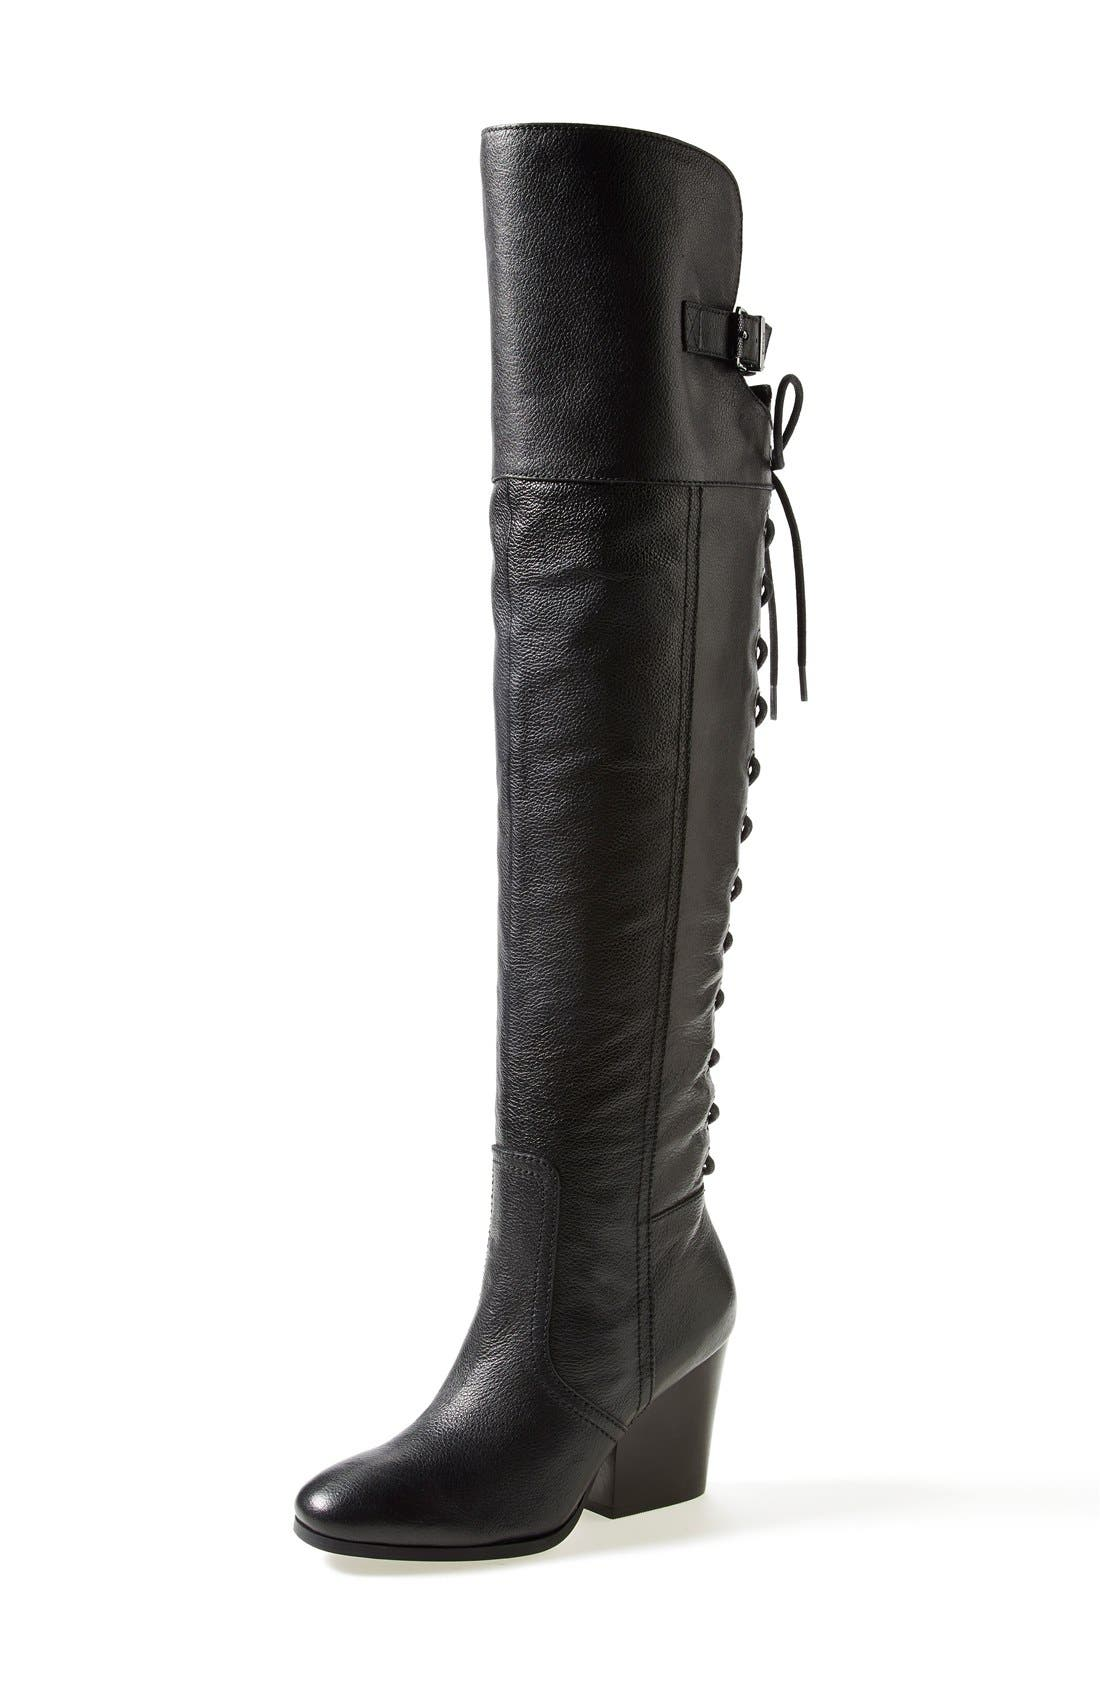 Alternate Image 1 Selected - Circus by Sam Edelman 'Tatum' Over The Knee Boot (Women)